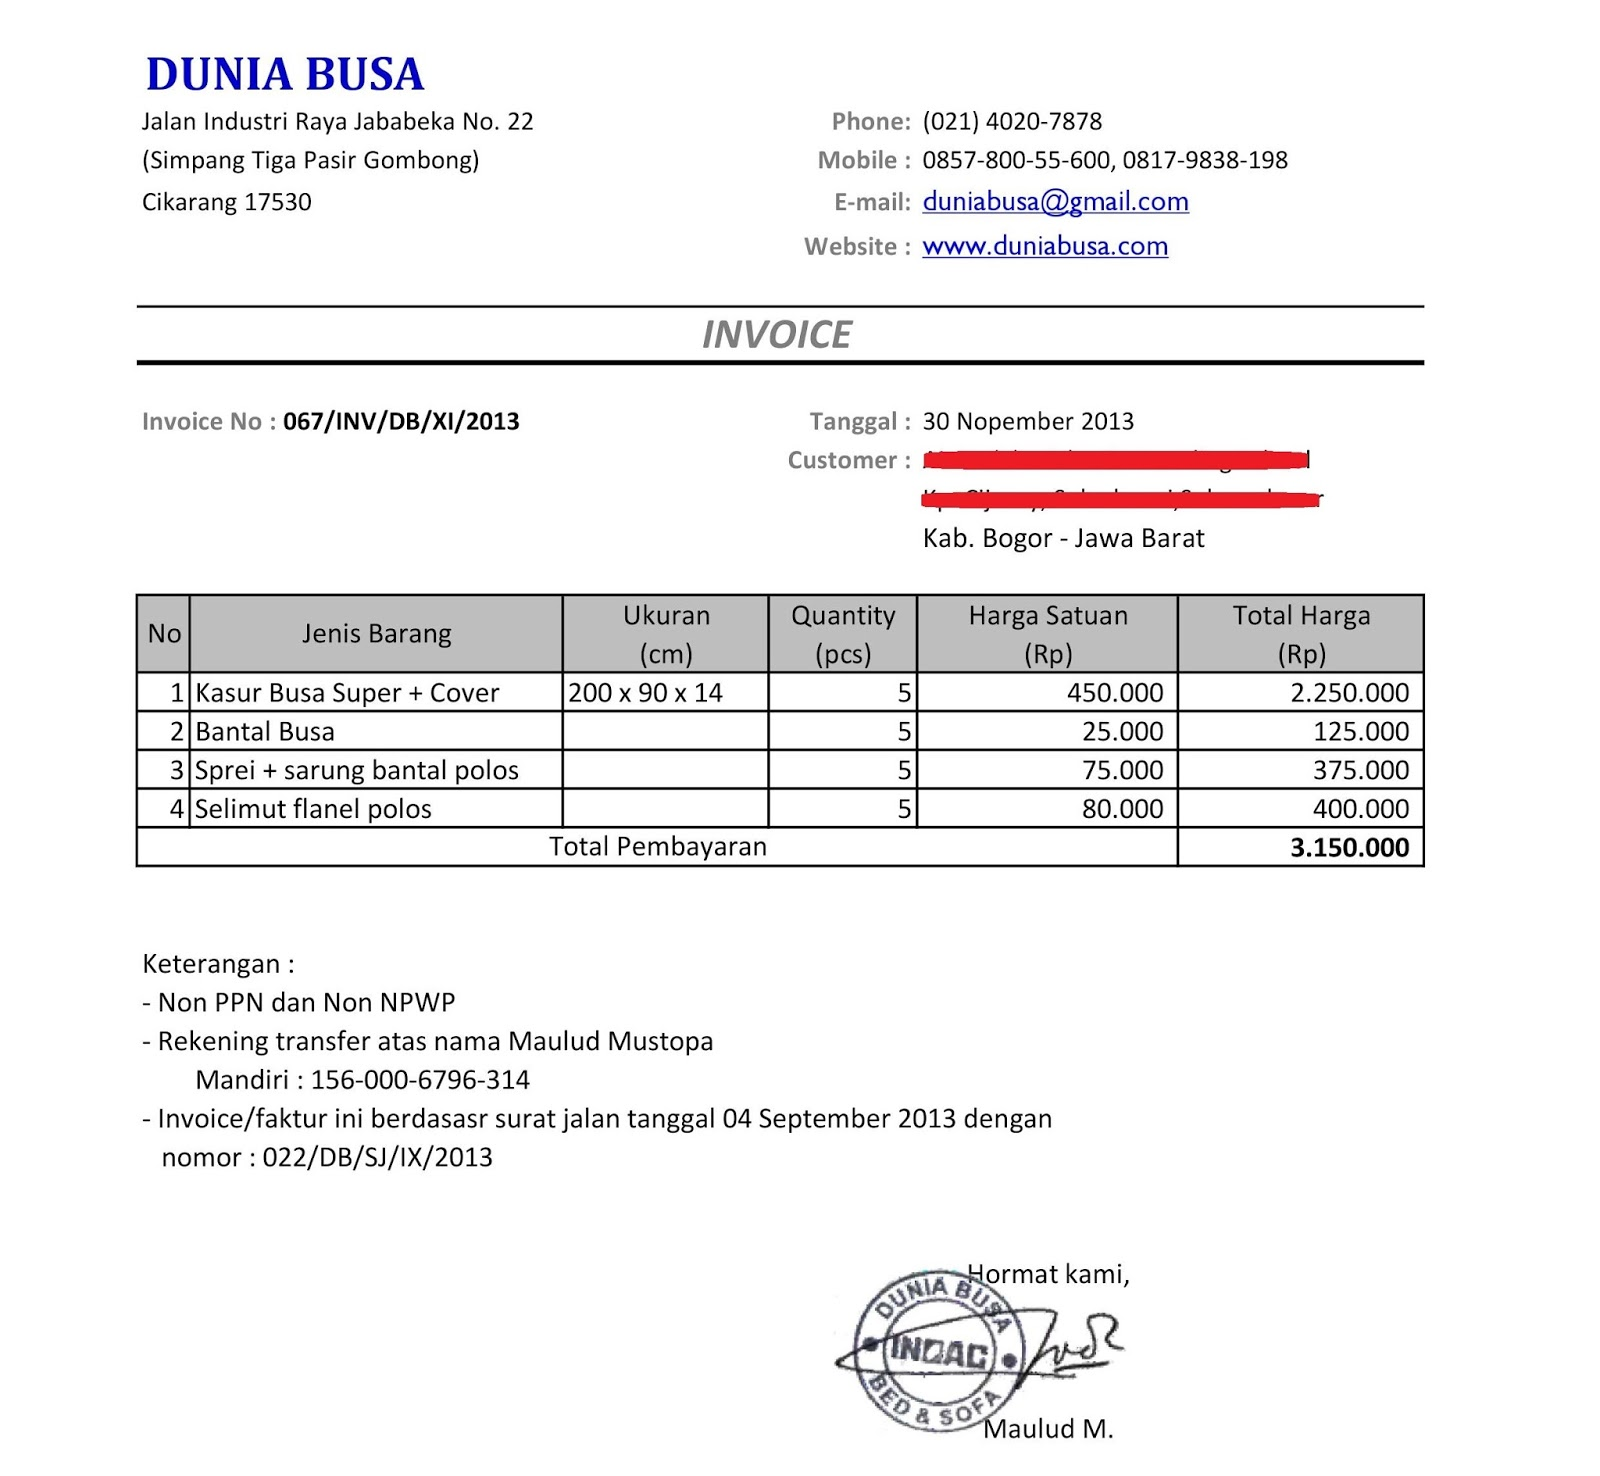 Barneybonesus  Unusual Free Invoice Online  Create Invoice Online  Invoice Template  With Remarkable Contoh Format Invoice Atau Surat Tagihan  Brankas Arsip  Free Invoice Online With Archaic Ar Invoice Also Free Invoicing App In Addition Home Repair Invoice And Invoice Number Definition As Well As Hvac Invoice Software Additionally Sample Photography Invoice From Sklepco With Barneybonesus  Remarkable Free Invoice Online  Create Invoice Online  Invoice Template  With Archaic Contoh Format Invoice Atau Surat Tagihan  Brankas Arsip  Free Invoice Online And Unusual Ar Invoice Also Free Invoicing App In Addition Home Repair Invoice From Sklepco